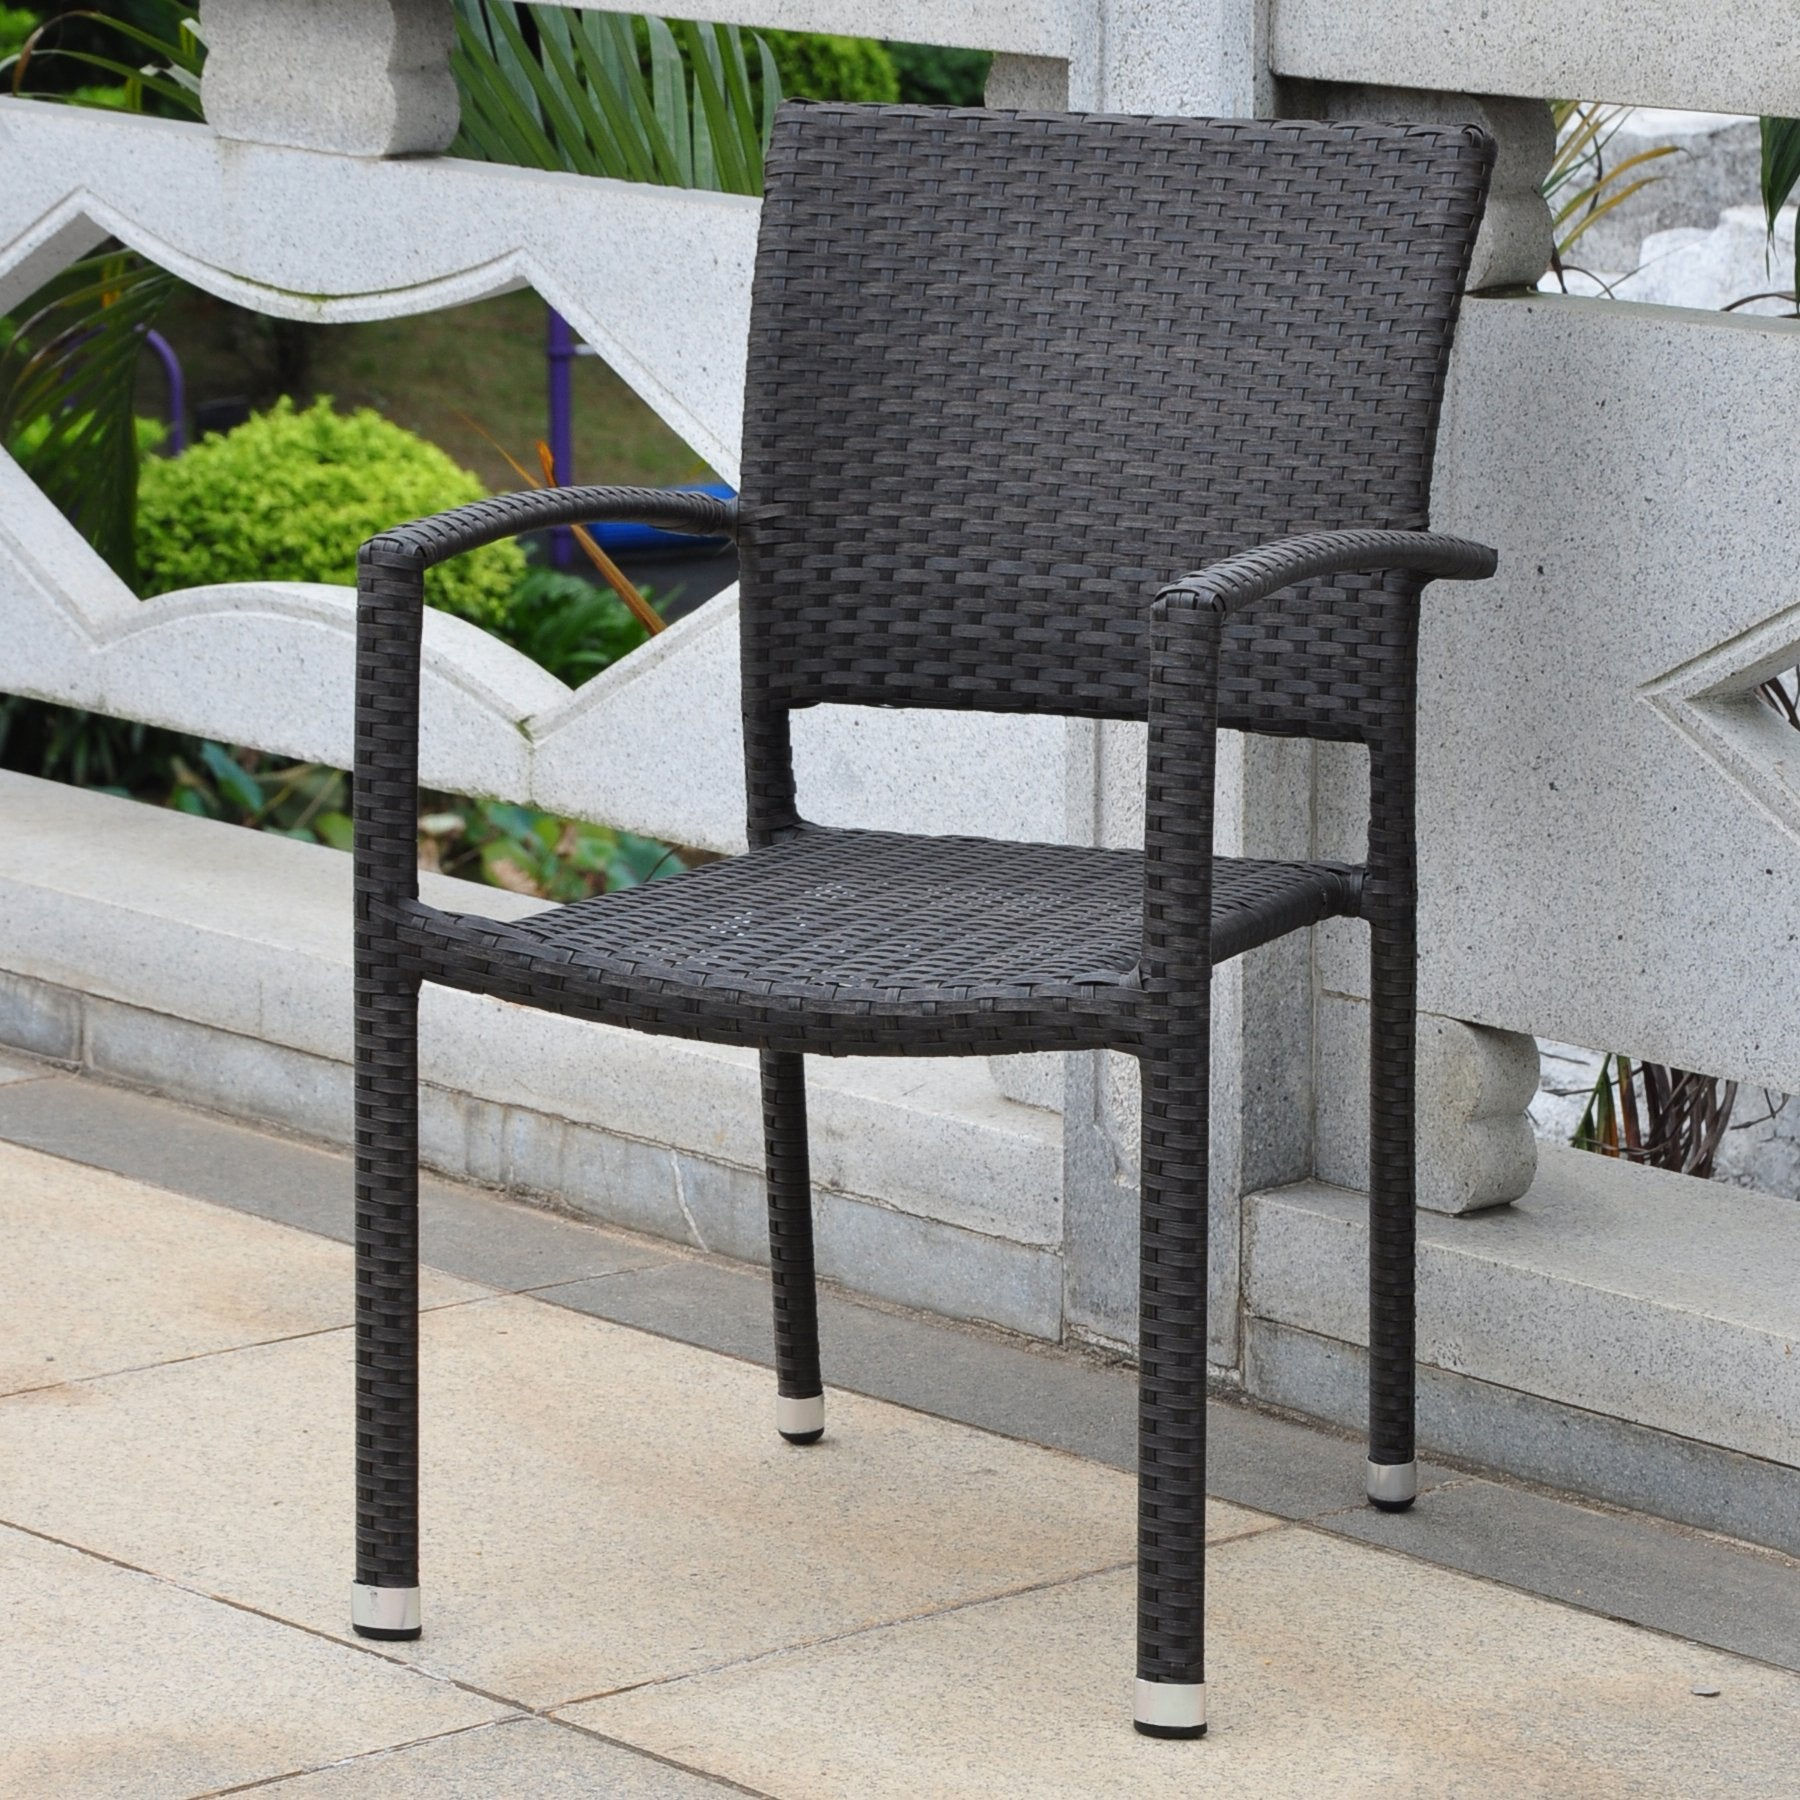 Barcelona Resin Wicker/ Aluminum Square Back Outdoor Stackable Armchair - Antique Black